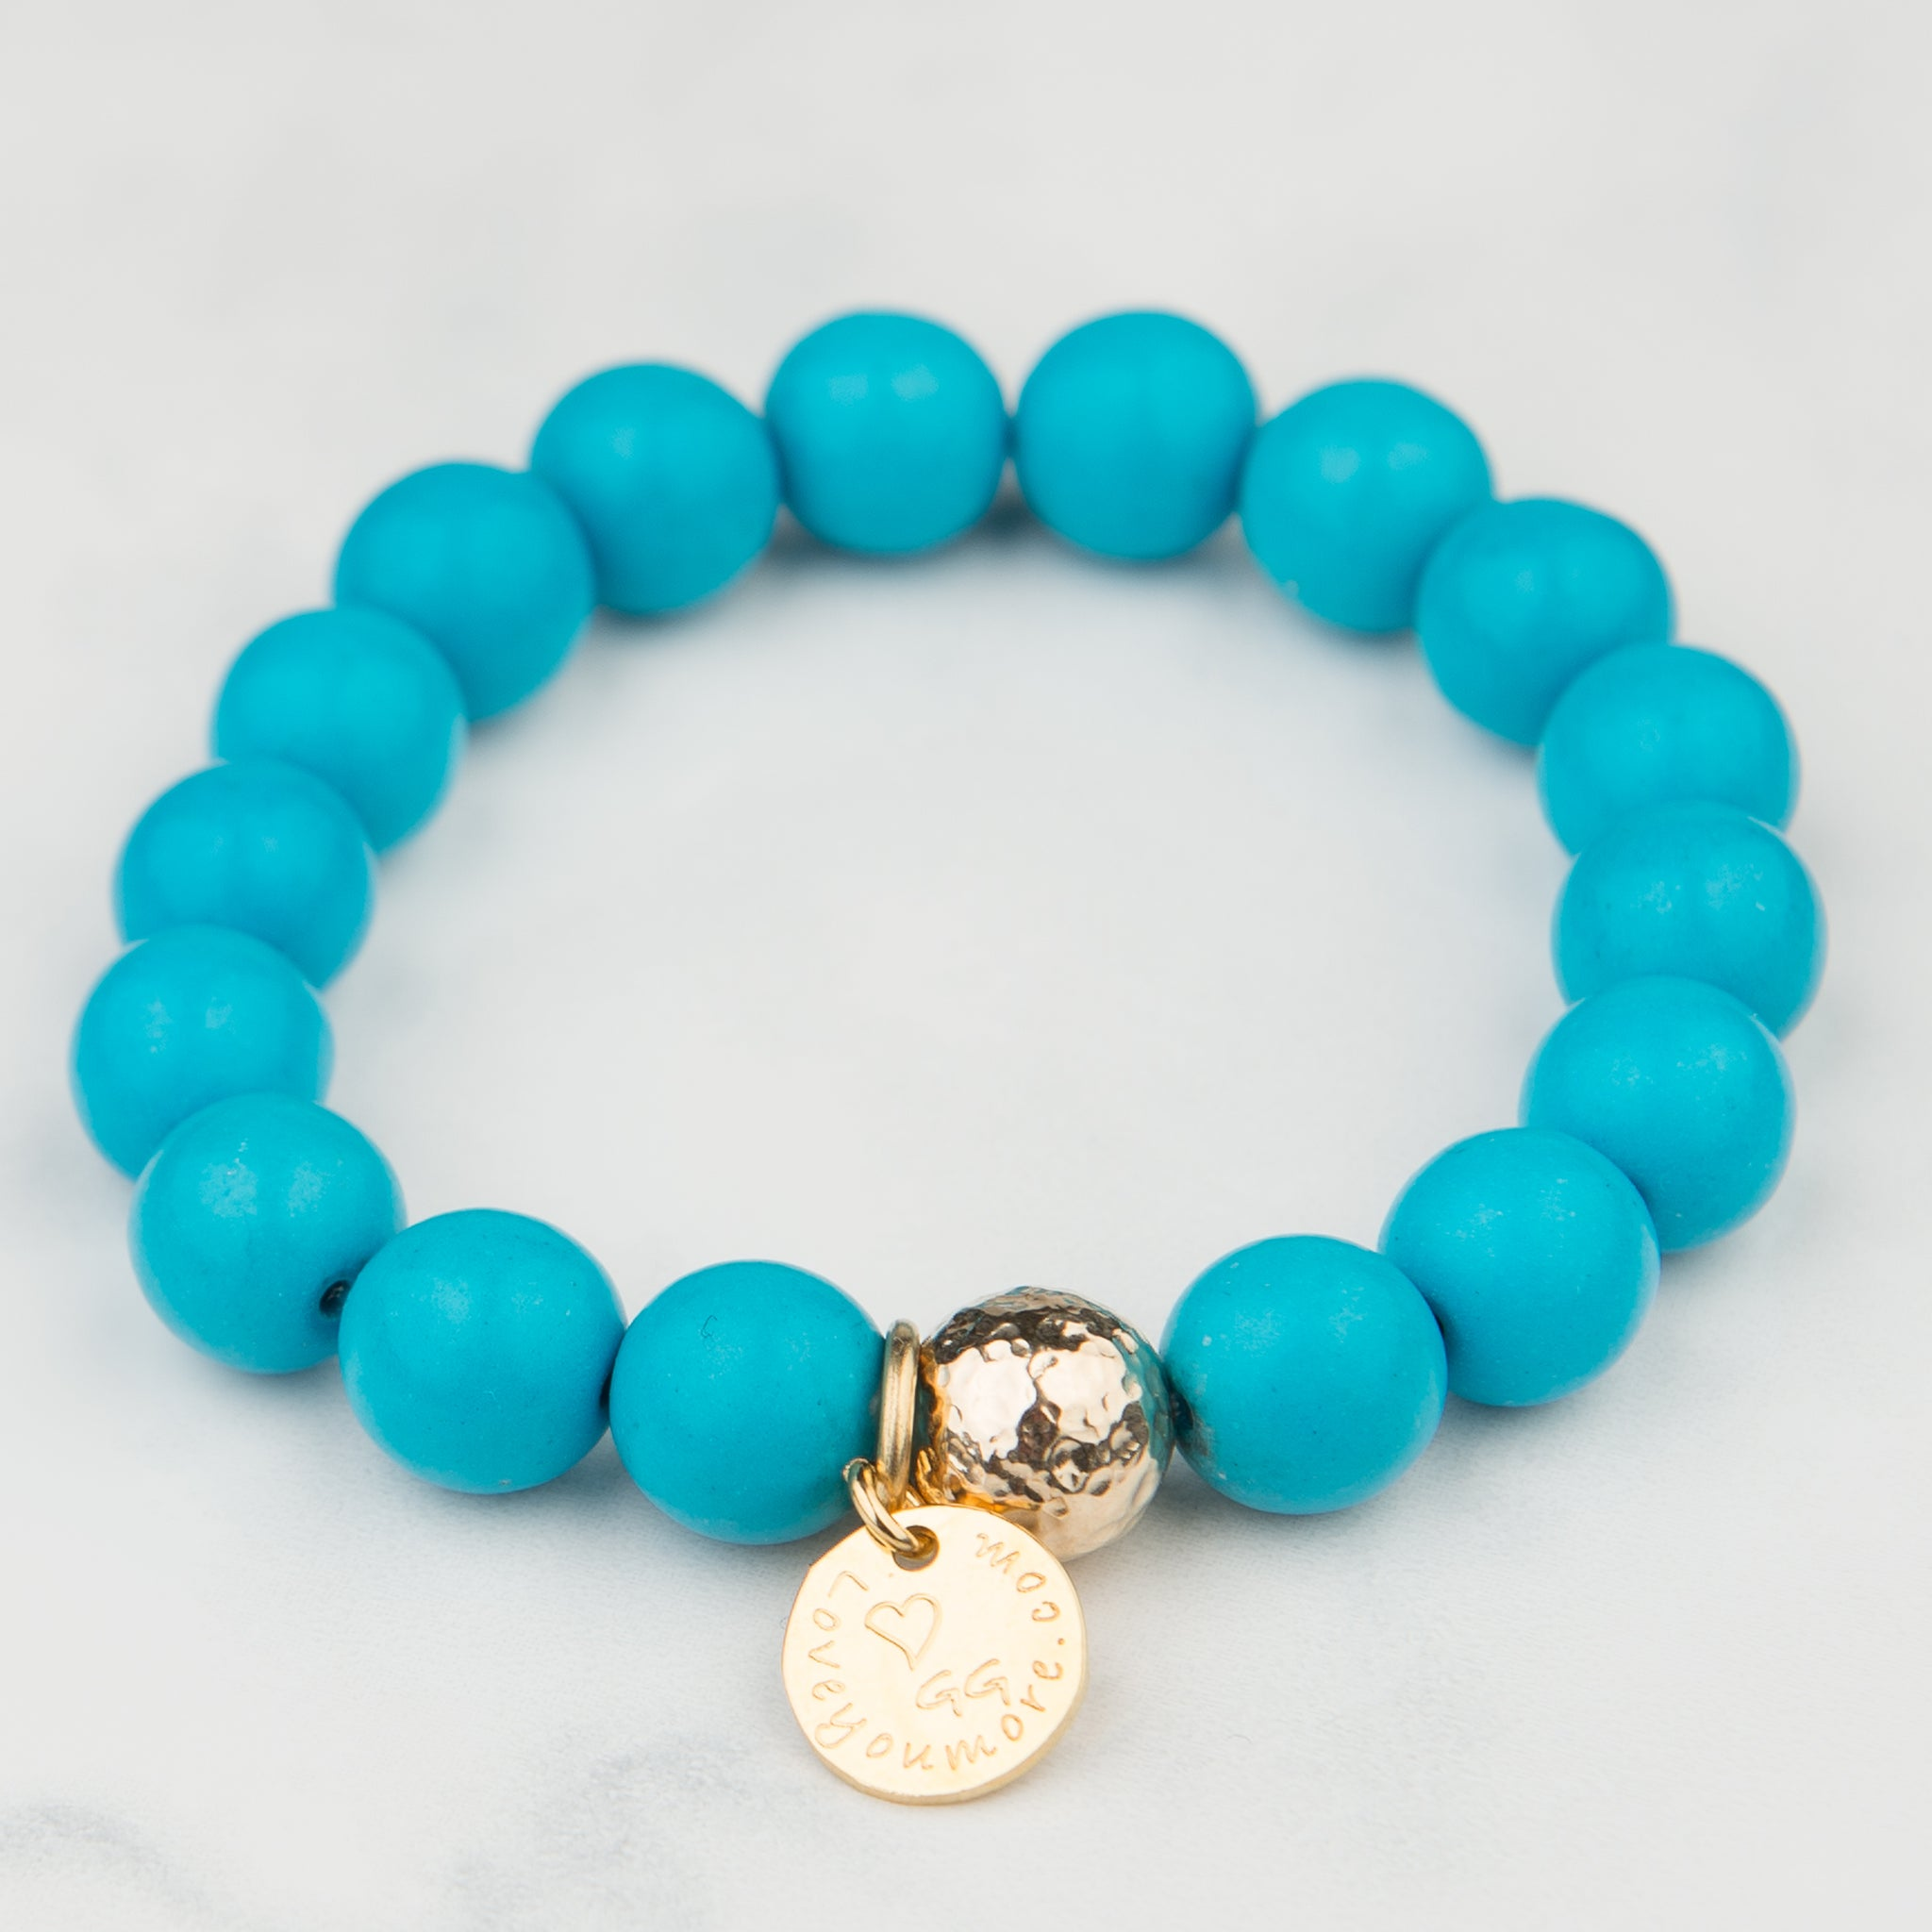 Teal Bead Bracelet (10mm Beads)